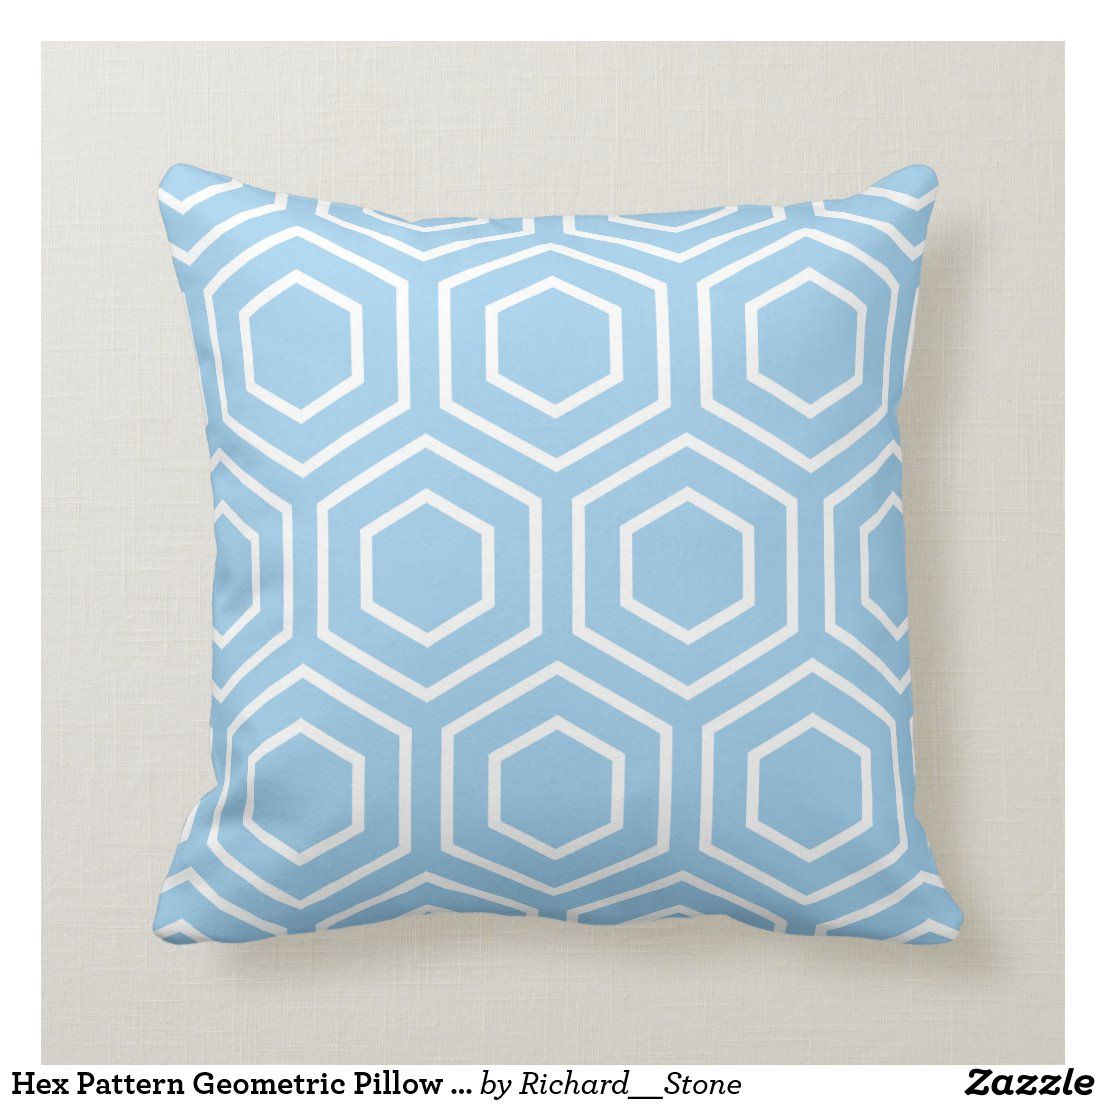 Hex Pattern Geometric Pillow In Sky Blue Zazzle Com In 2020 Geometric Pillow Blue Pillows Decorative Pillows